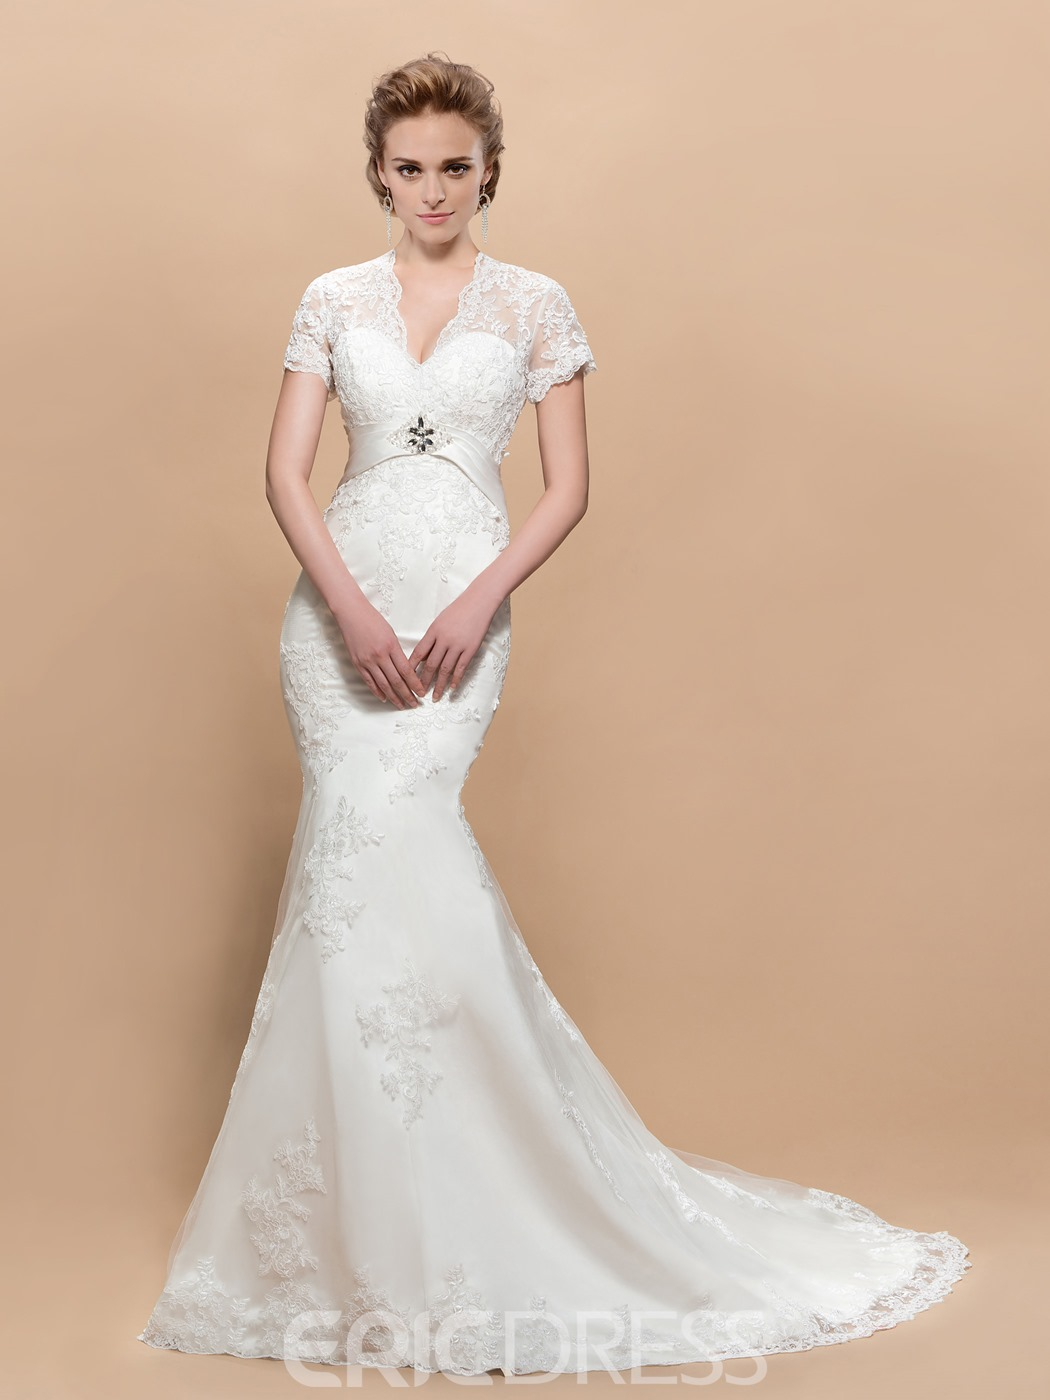 Fascinating V-neck Short Sleeves Trumpet Court Train Wedding Dress